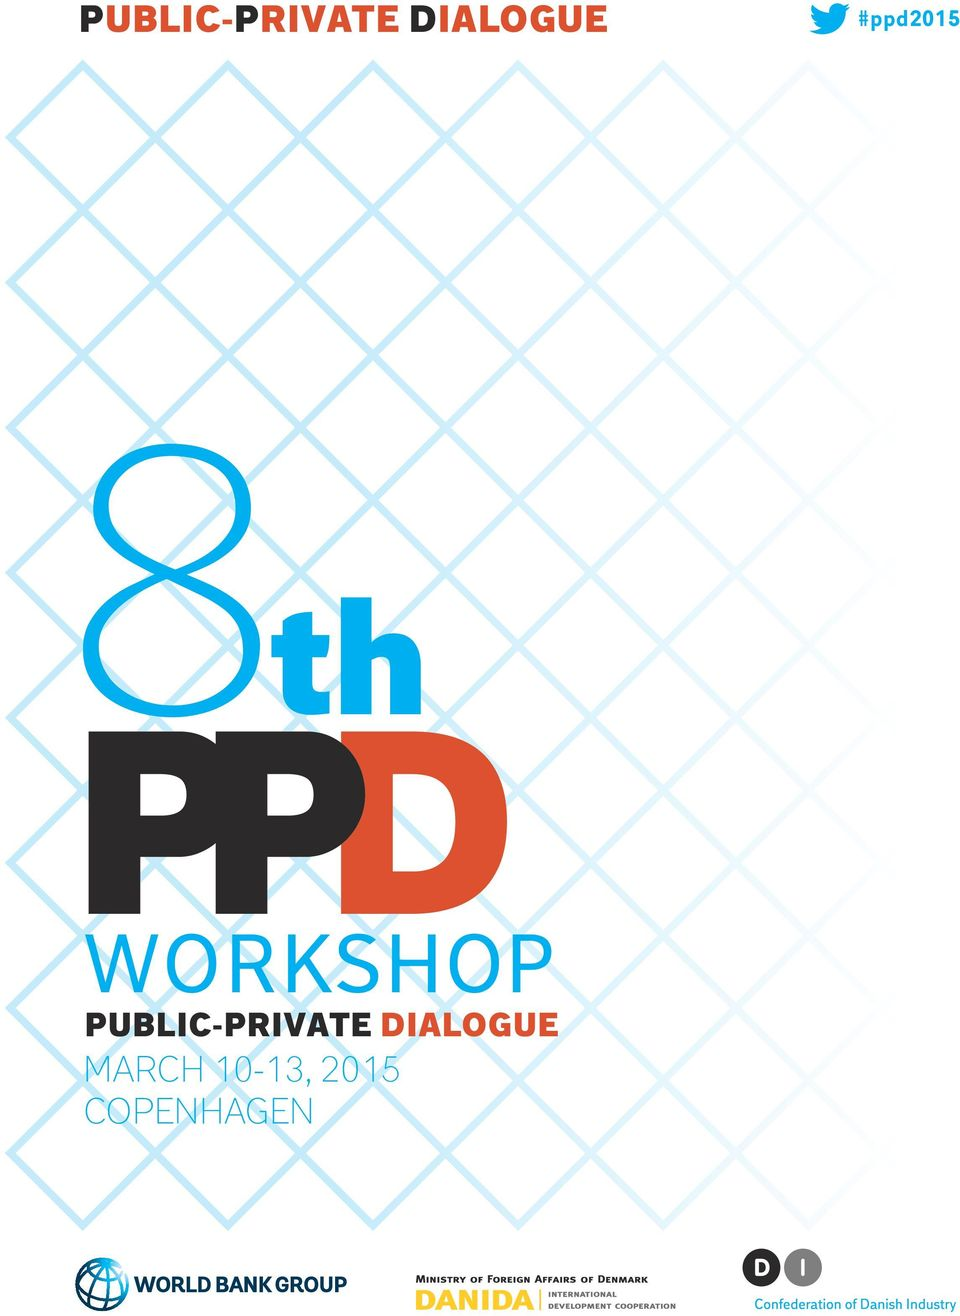 DIALOGUE MARCH 10-13,